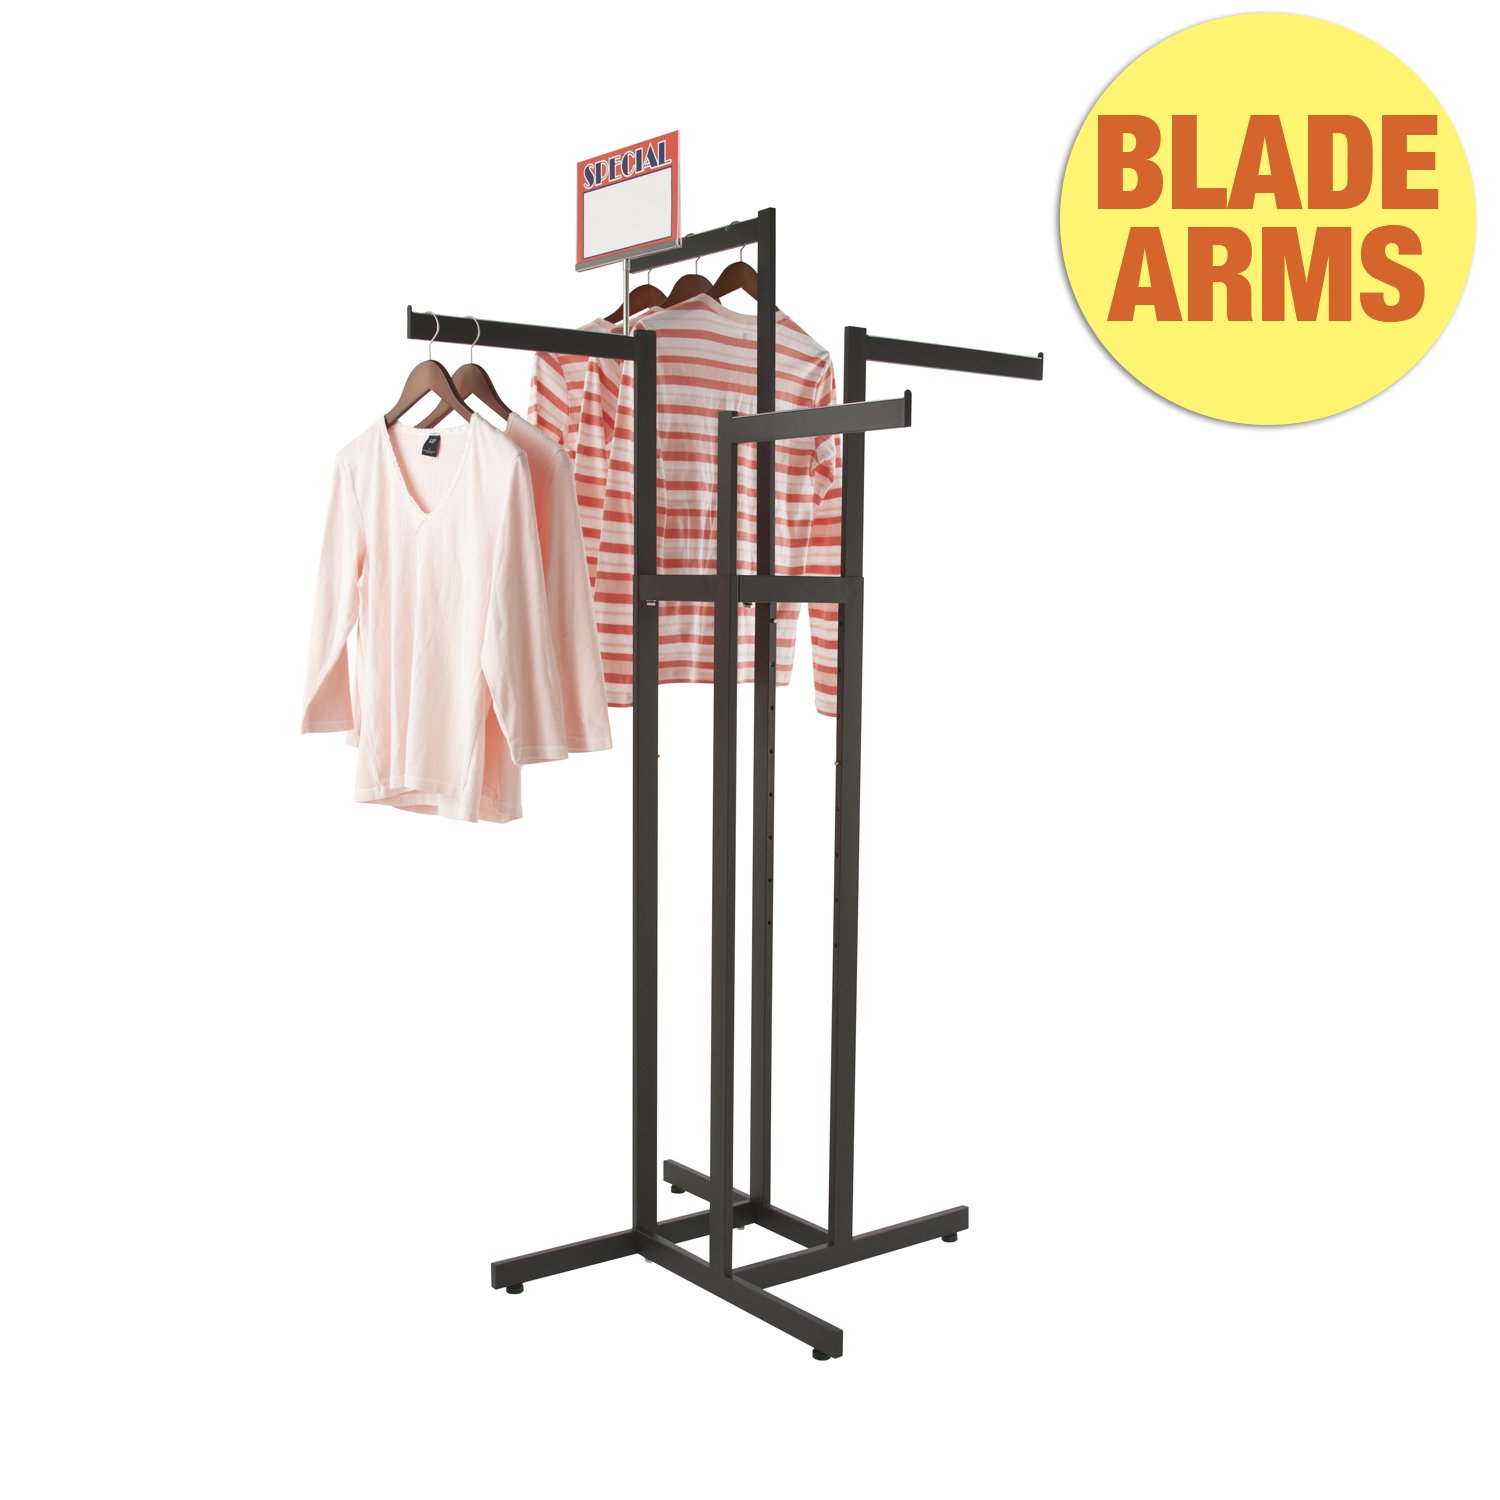 Clothing Rack - Black 4 Way Rack, Adjustable Height Arms, Blade Arms, Square Tubing, Perfect for Clothing Store Display With 4 Straight Arms